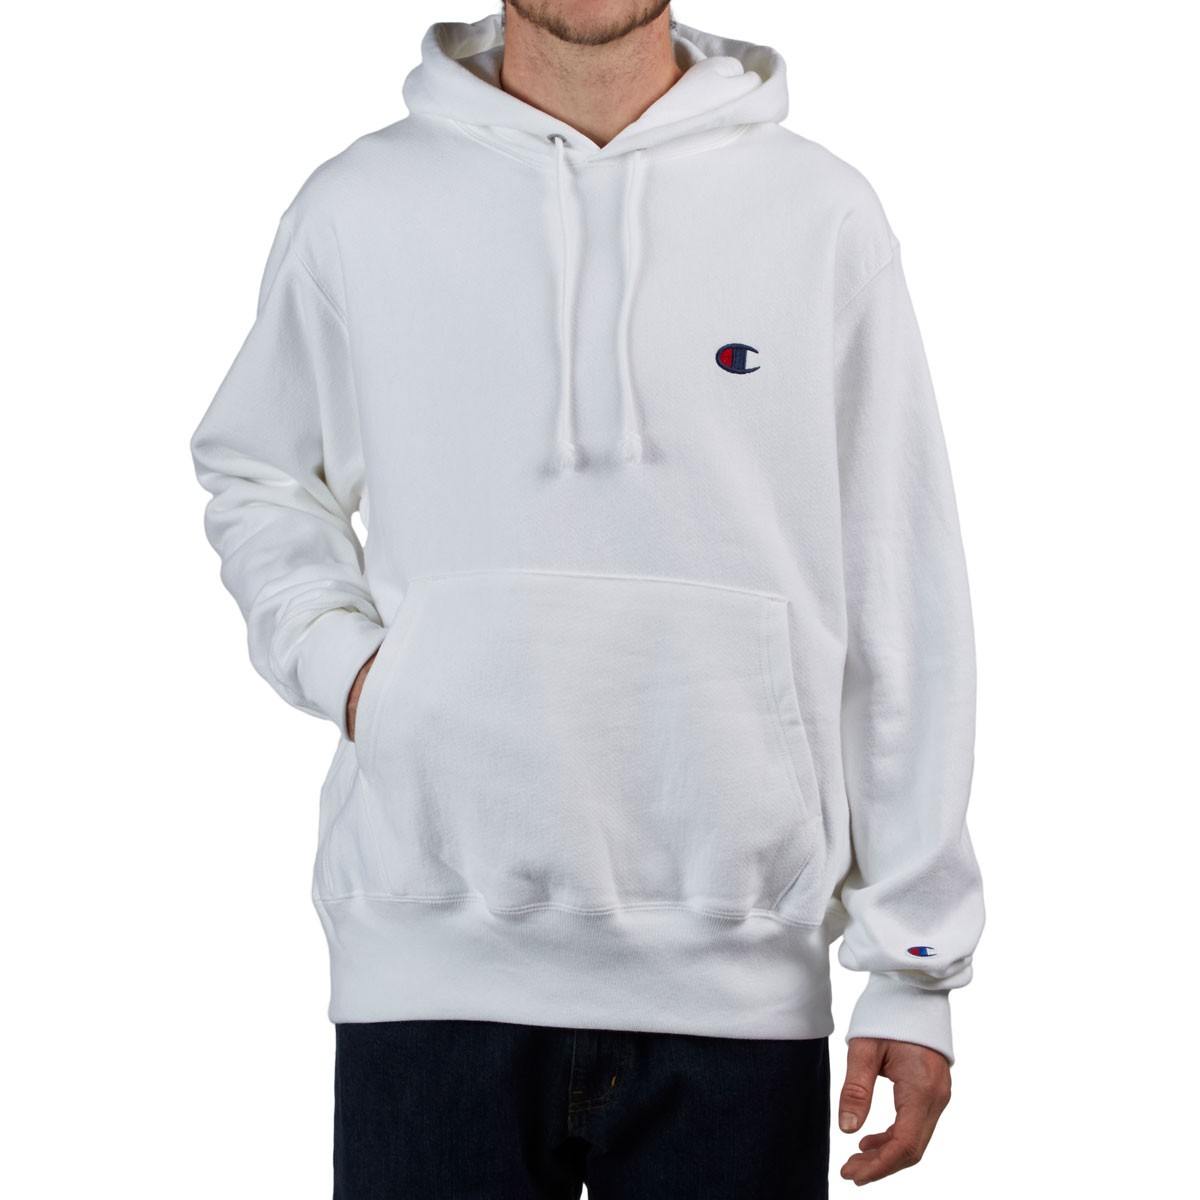 8a46daec Champion Reverse Weave Pullover Hoodie - White